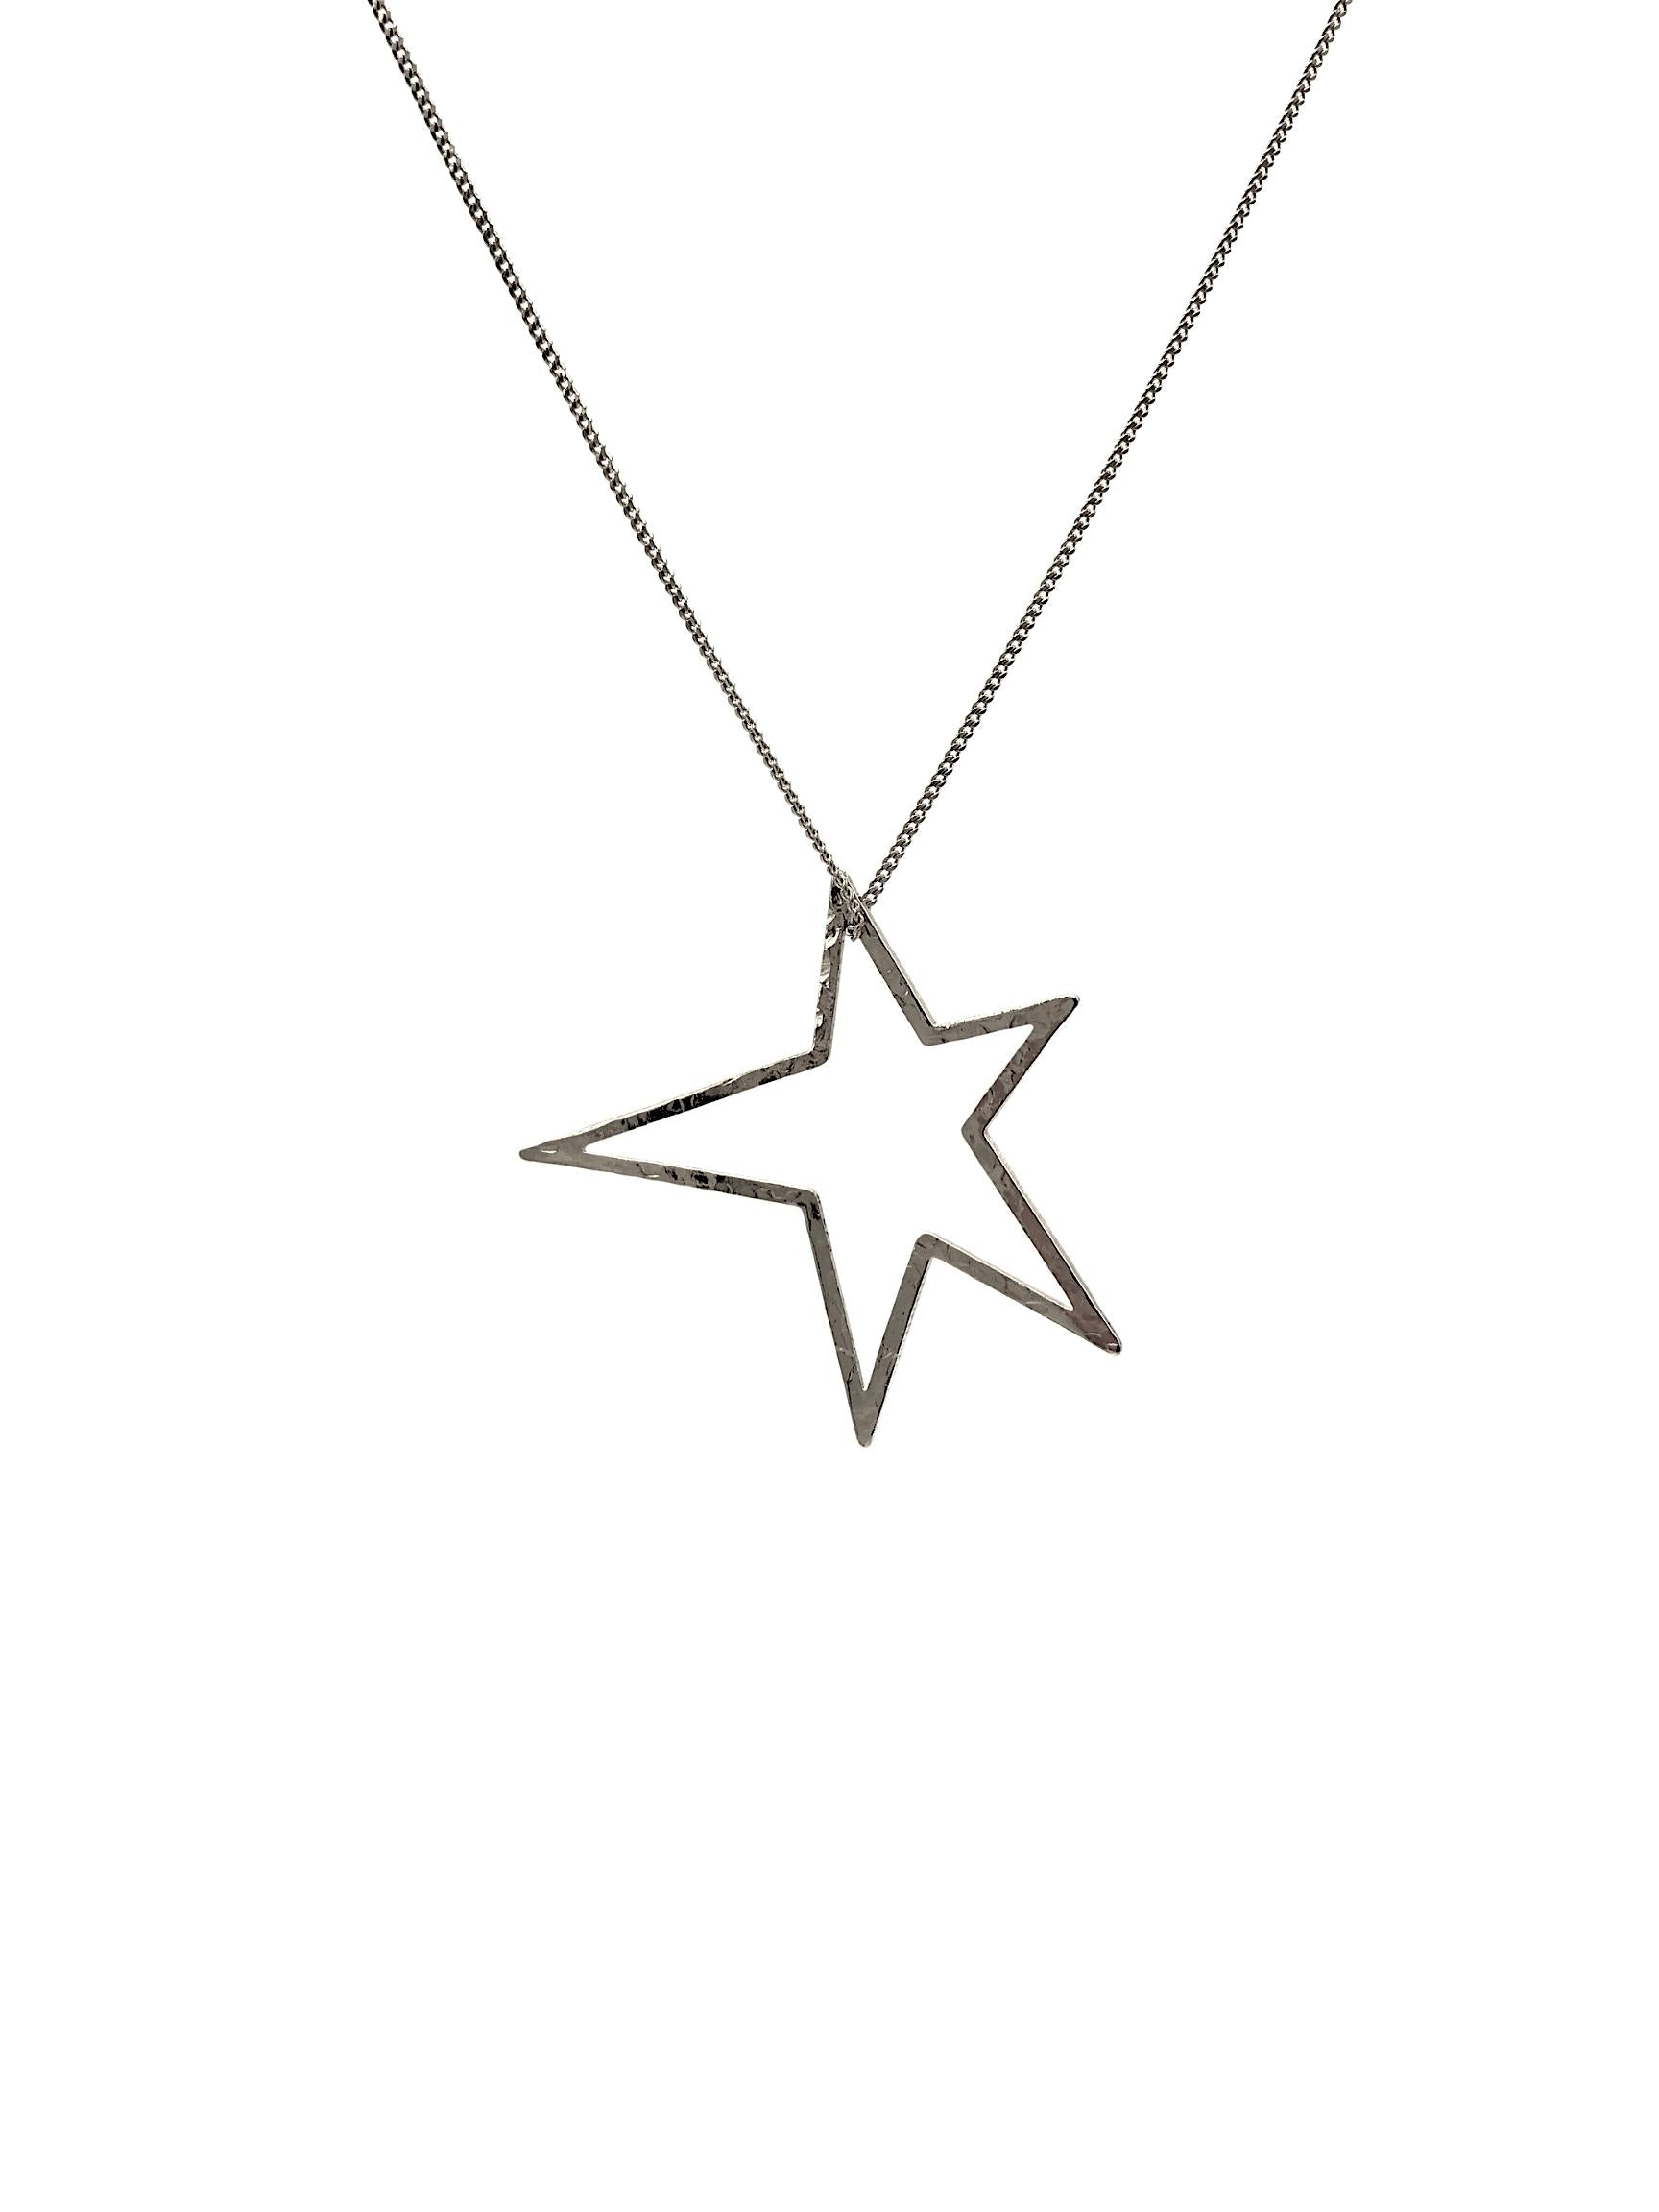 "Silver Shooting Star Dust Charm & Chain Necklace-Necklaces-JAREDJAMIN Jewelry Online-18""-20""-22""-JAREDJAMIN - Fashion Jewelry & Accessories"